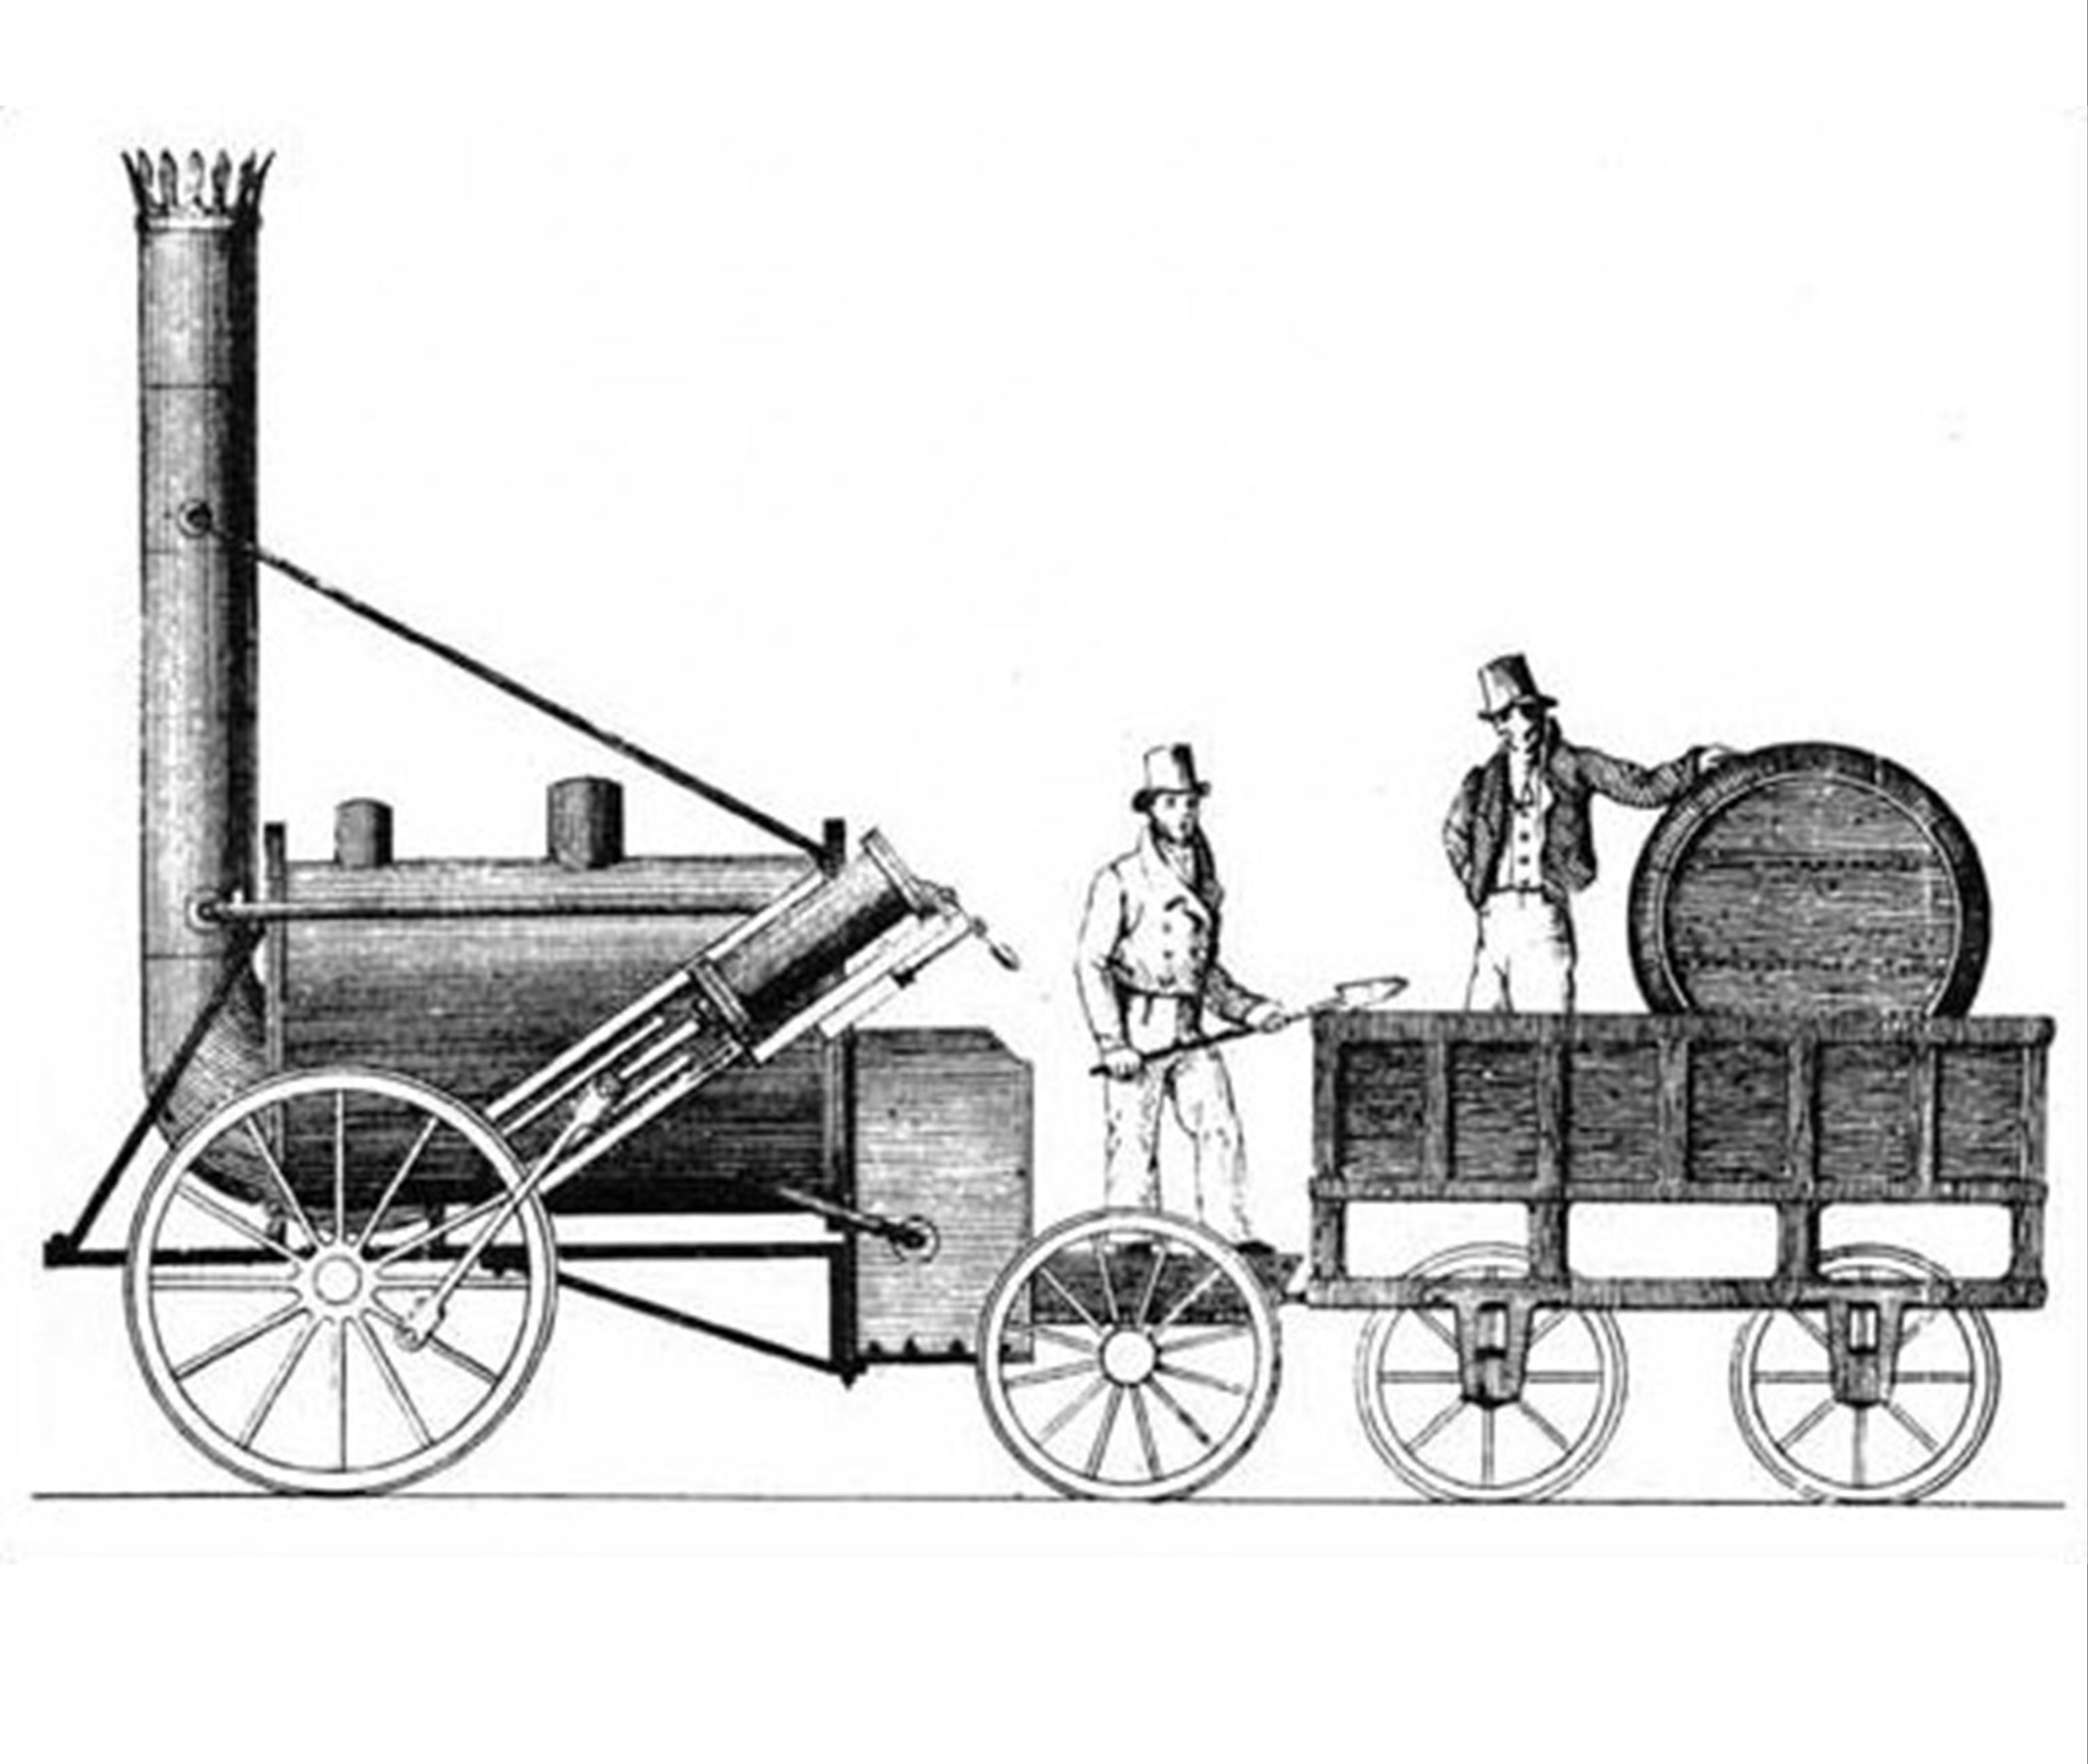 first steam locomotive 1829 stephensons u0026 39  rocket